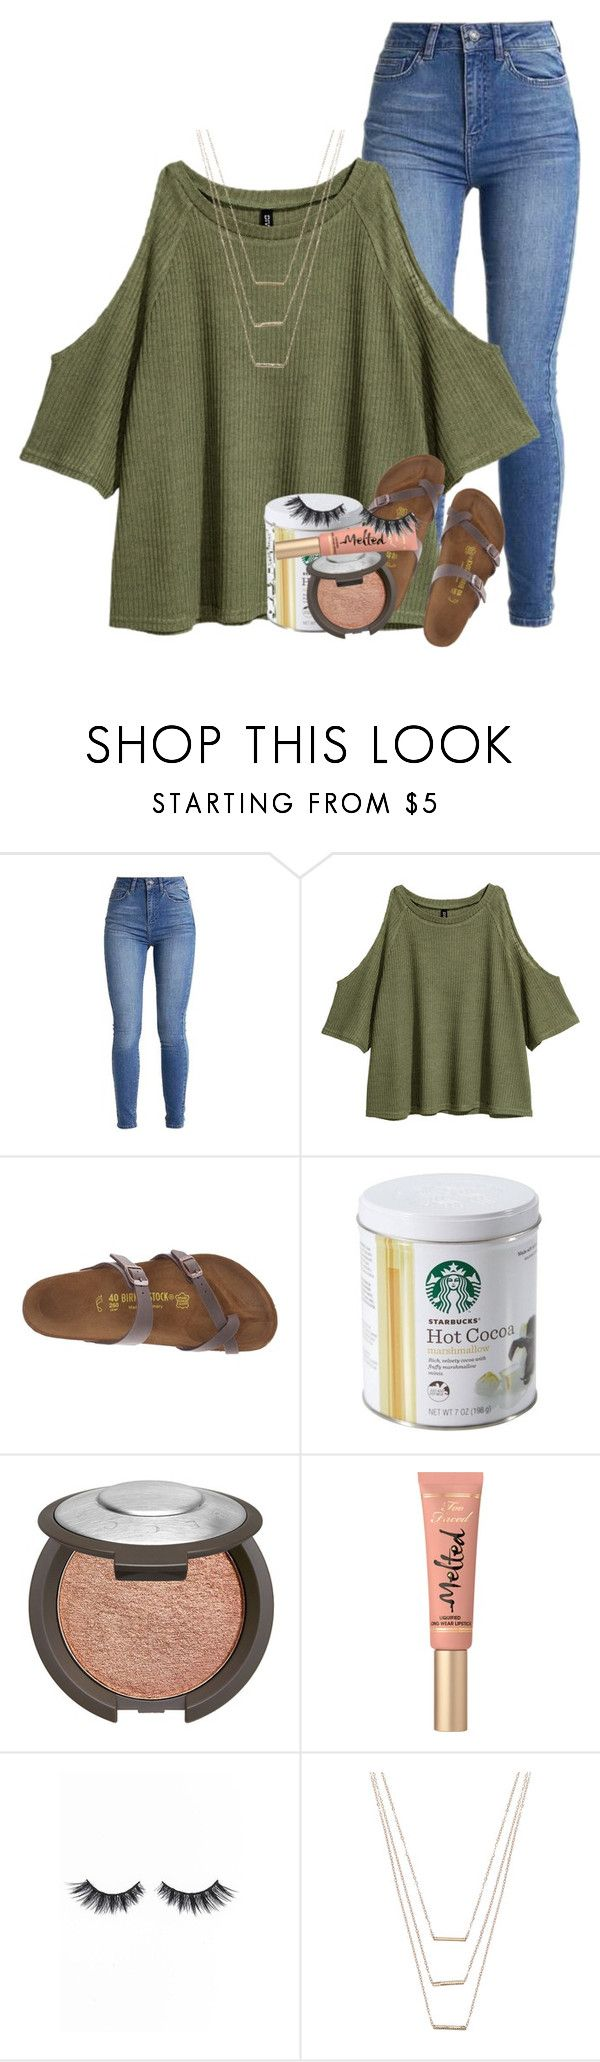 """i wish i was beside you"" by emilyandella ❤ liked on Polyvore featuring Birkenstock, Becca, Too Faced Cosmetics, Violet Voss and ERTH"